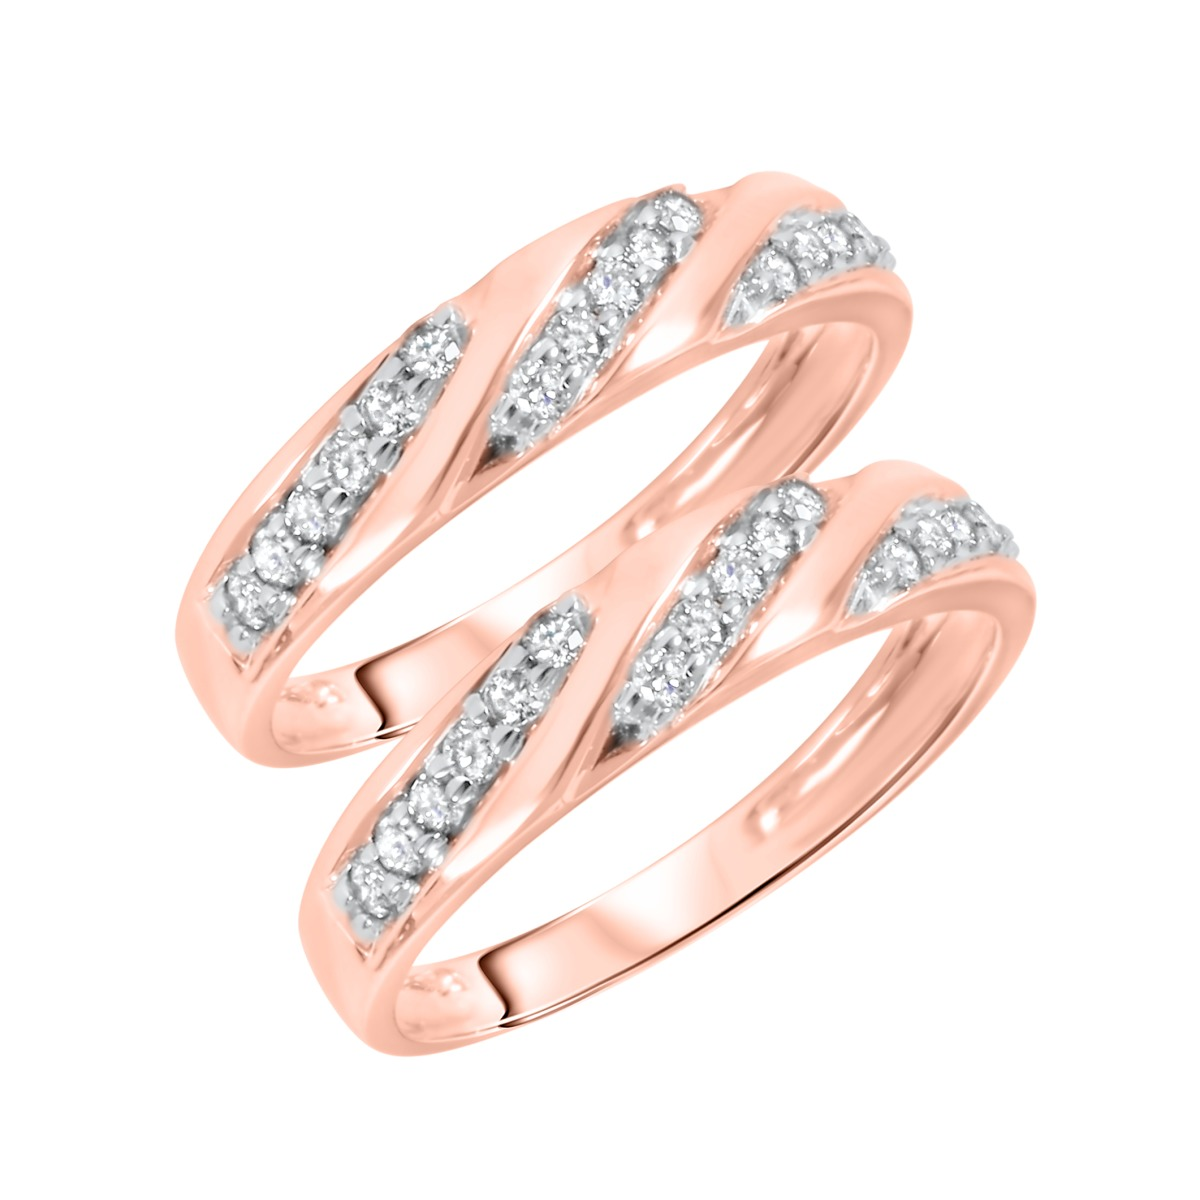 1/2 Carat T.W. Round Cut Ladies Same Sex Wedding Band Set 14K Rose Gold